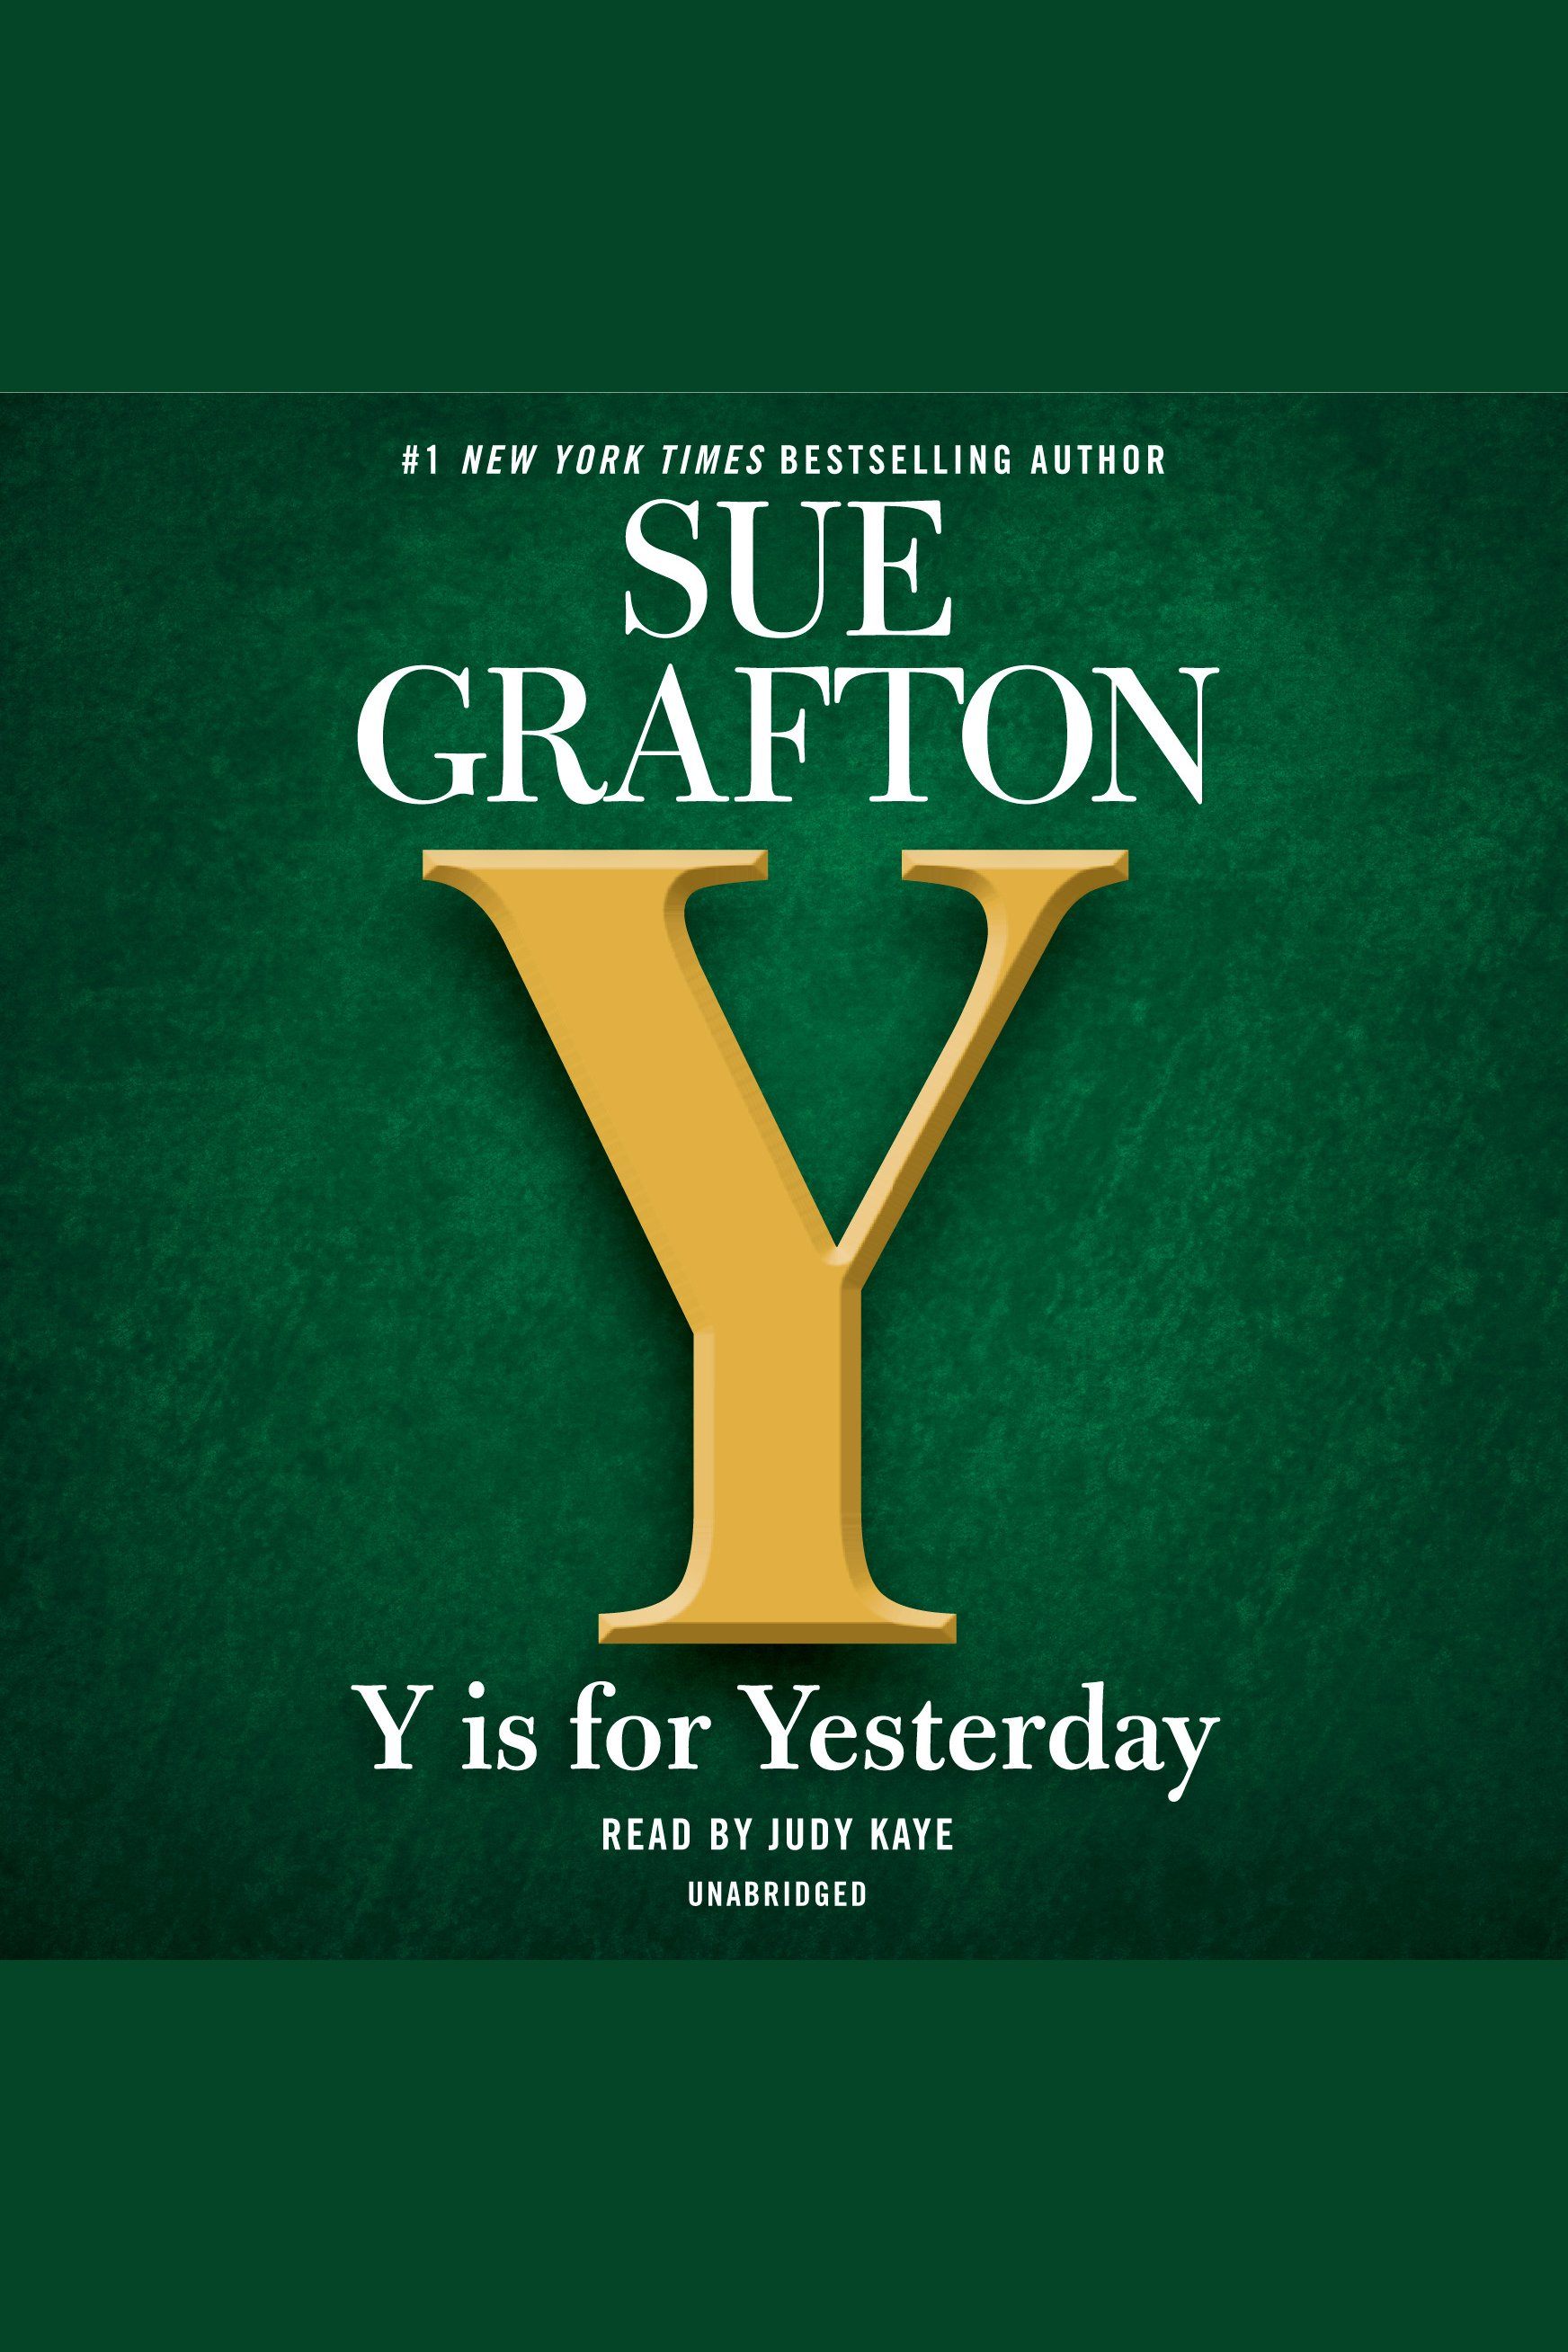 Y is for Yesterday [EAUDIOBOOK]